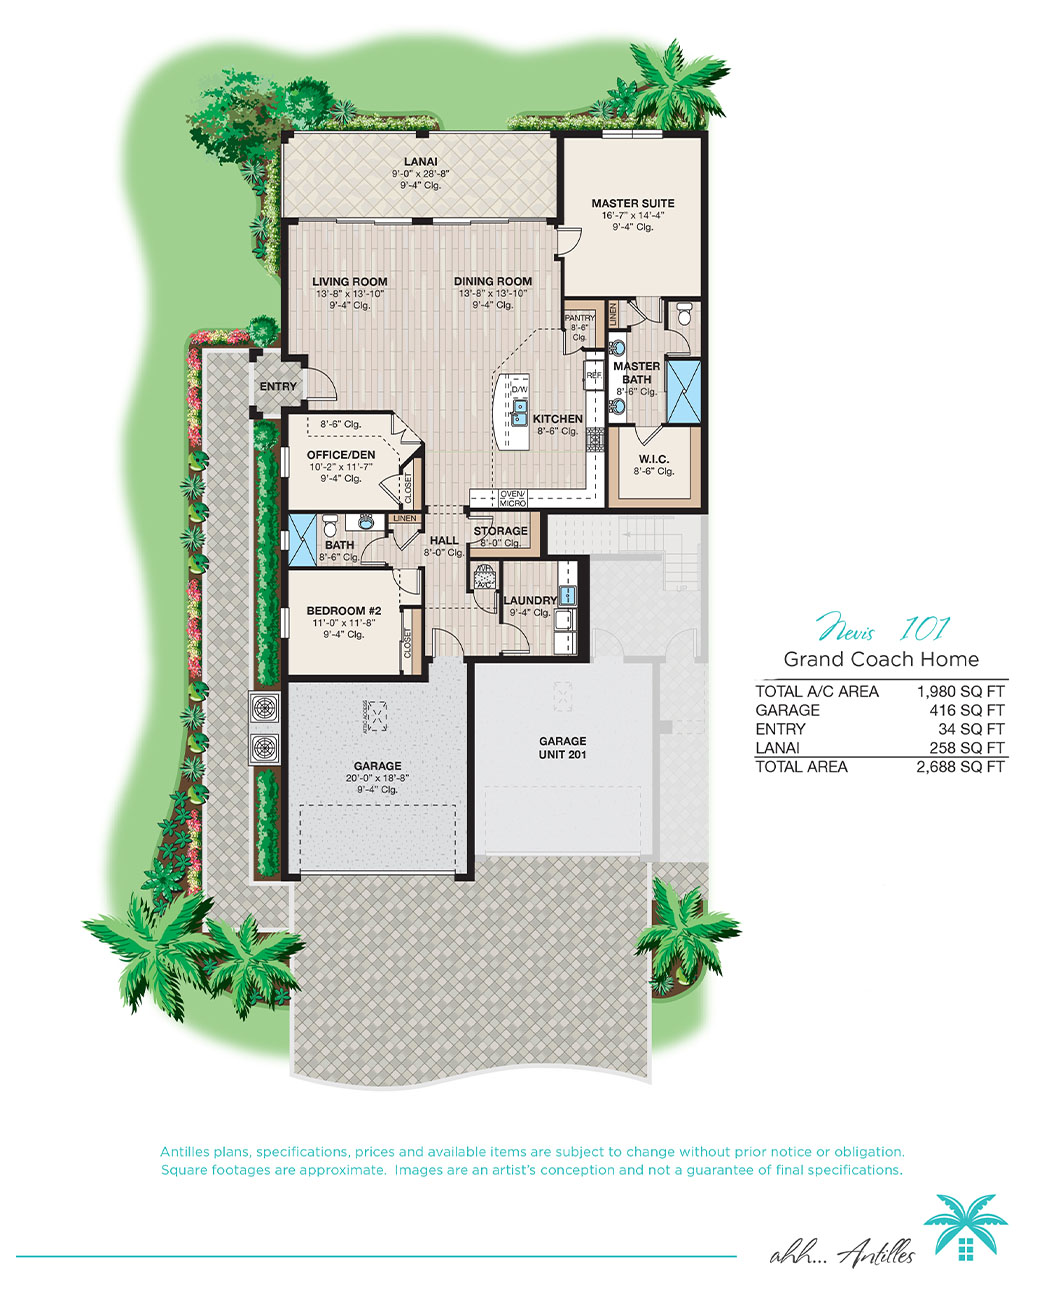 Grand Coach Homes Nevis 101 | Antilles of Naples, Florida - West Indies Styled Residential Resort